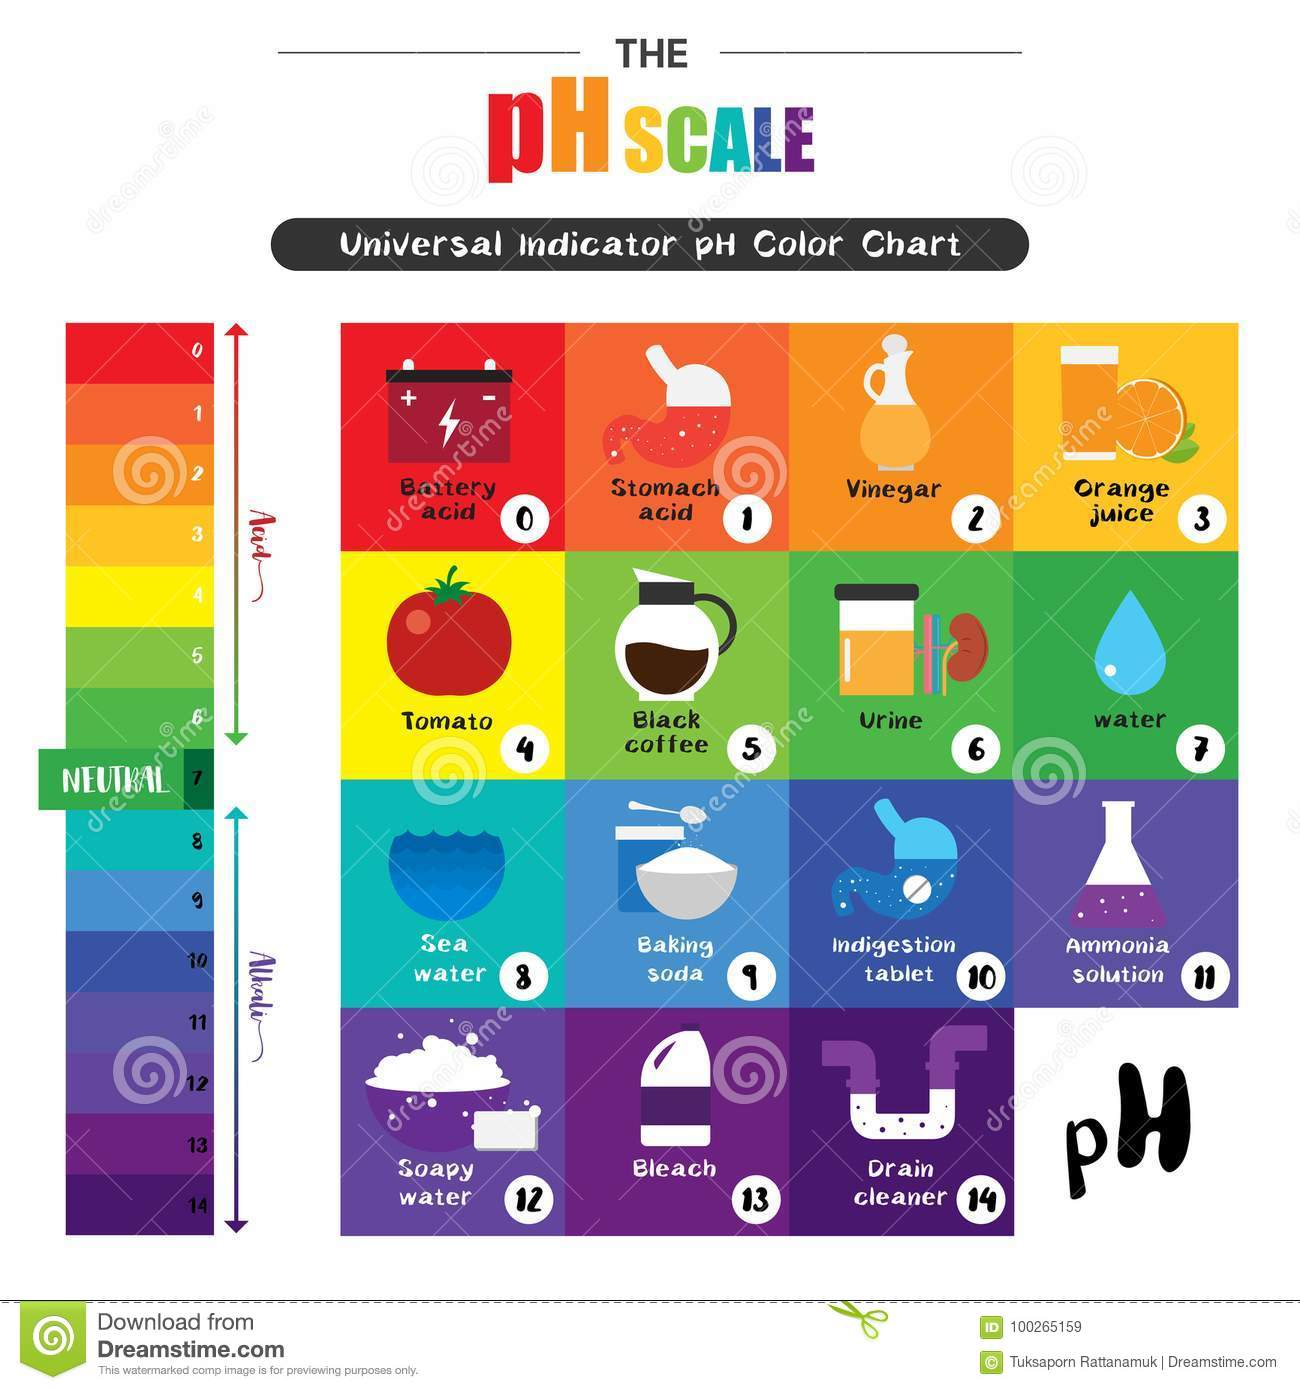 hight resolution of the ph scale universal indicator ph color chart diagram acidic alkaline values common substances vector illustration flat icon design colorful